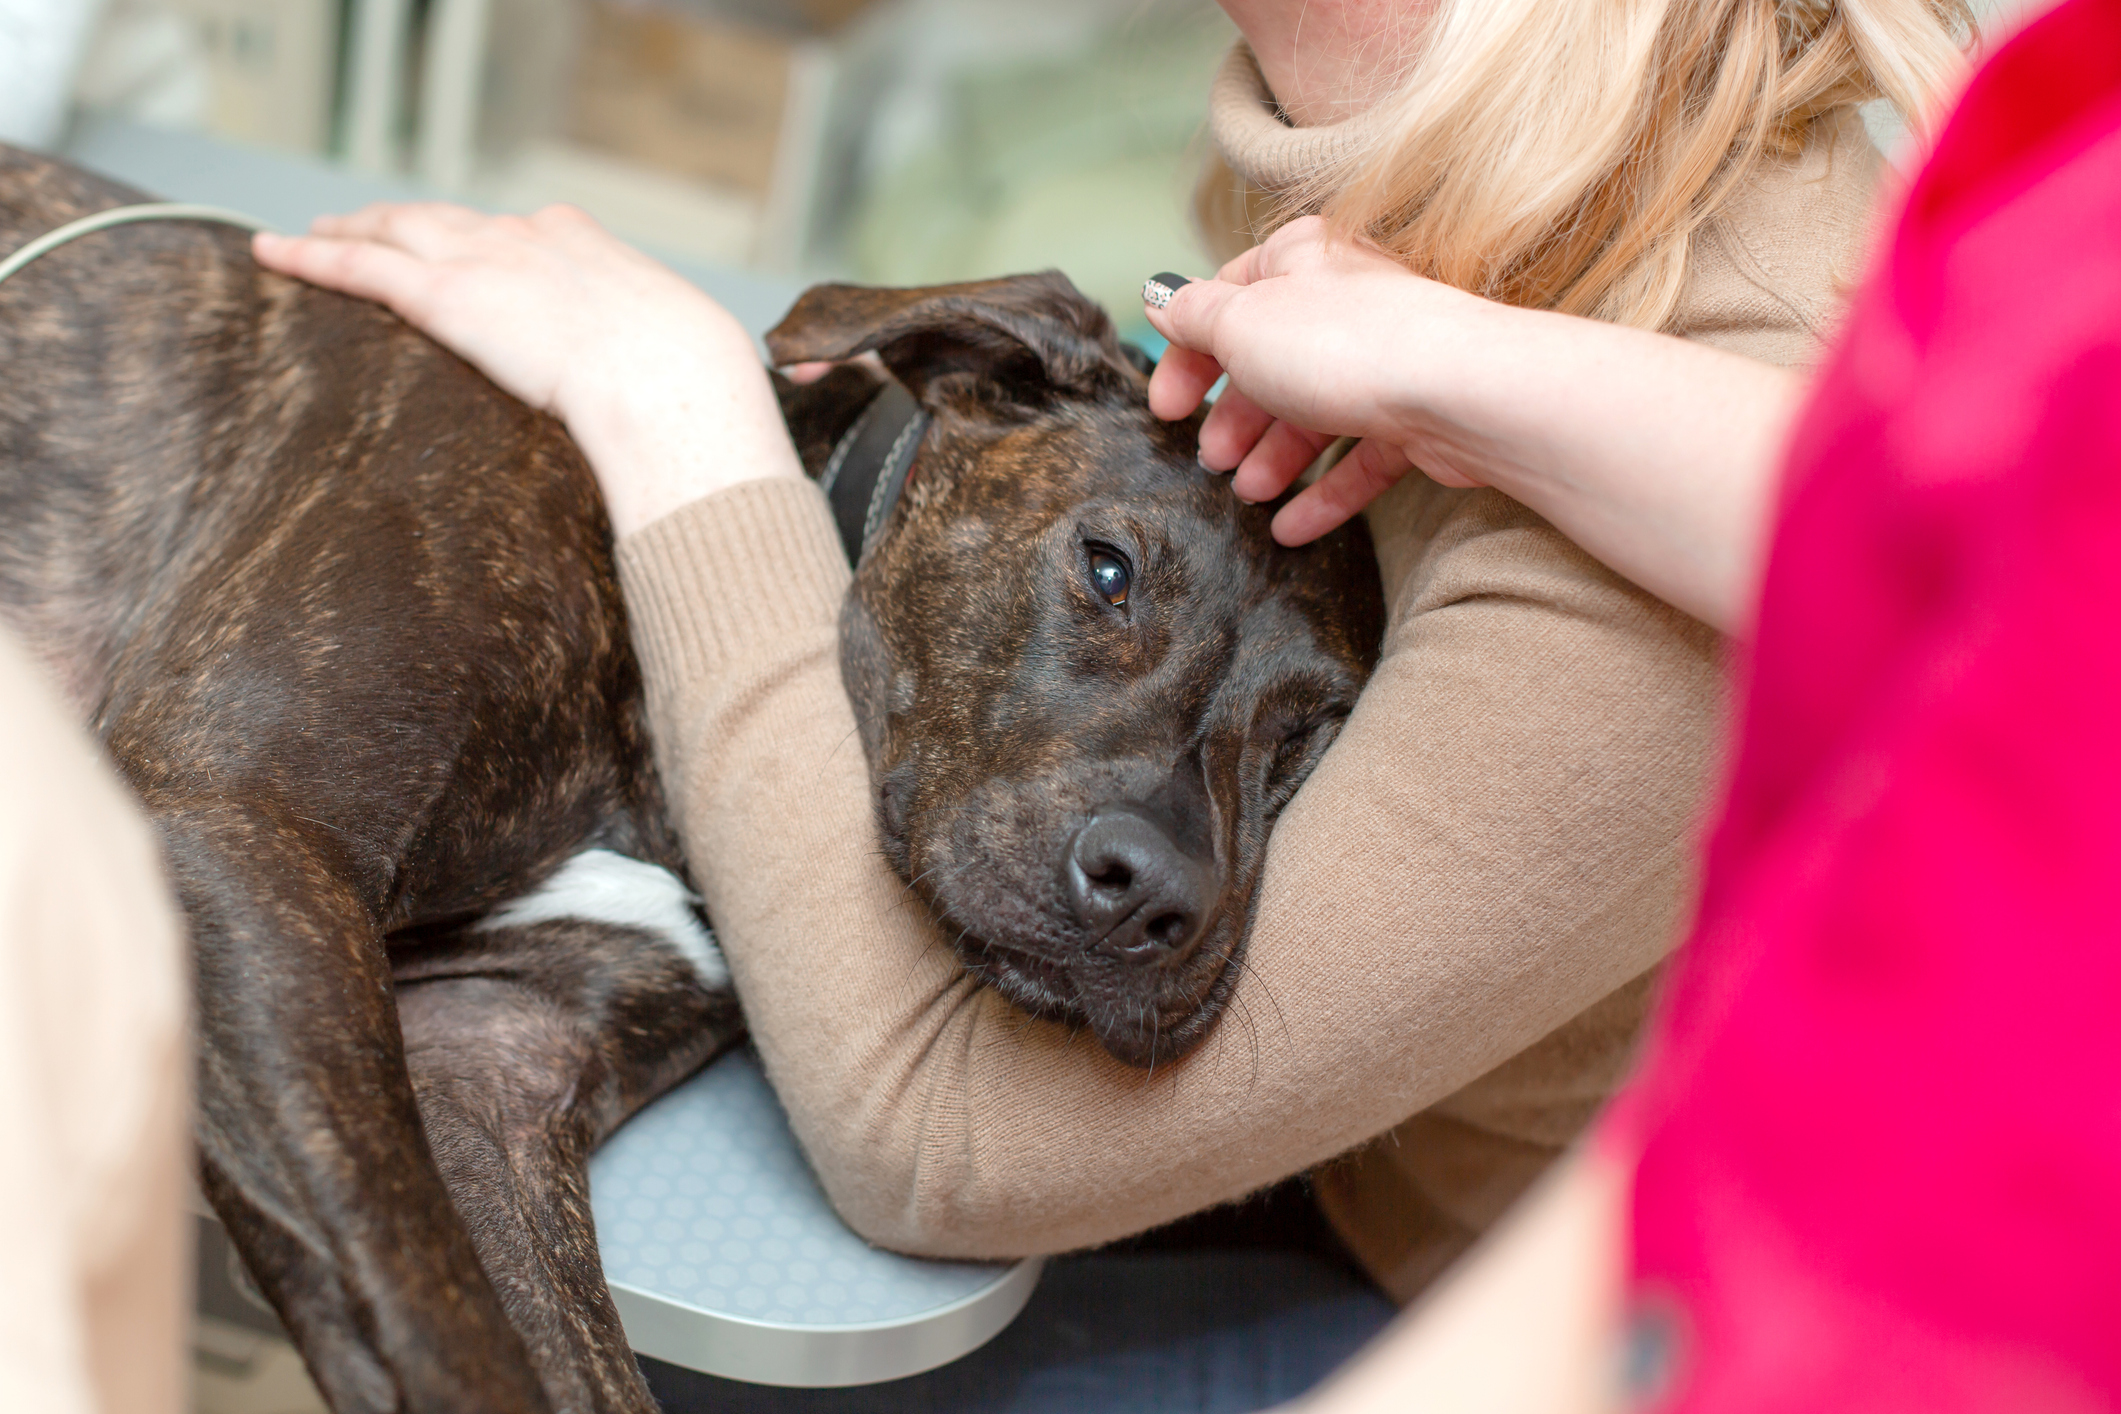 Sad brindle dog held by her owners at the vet